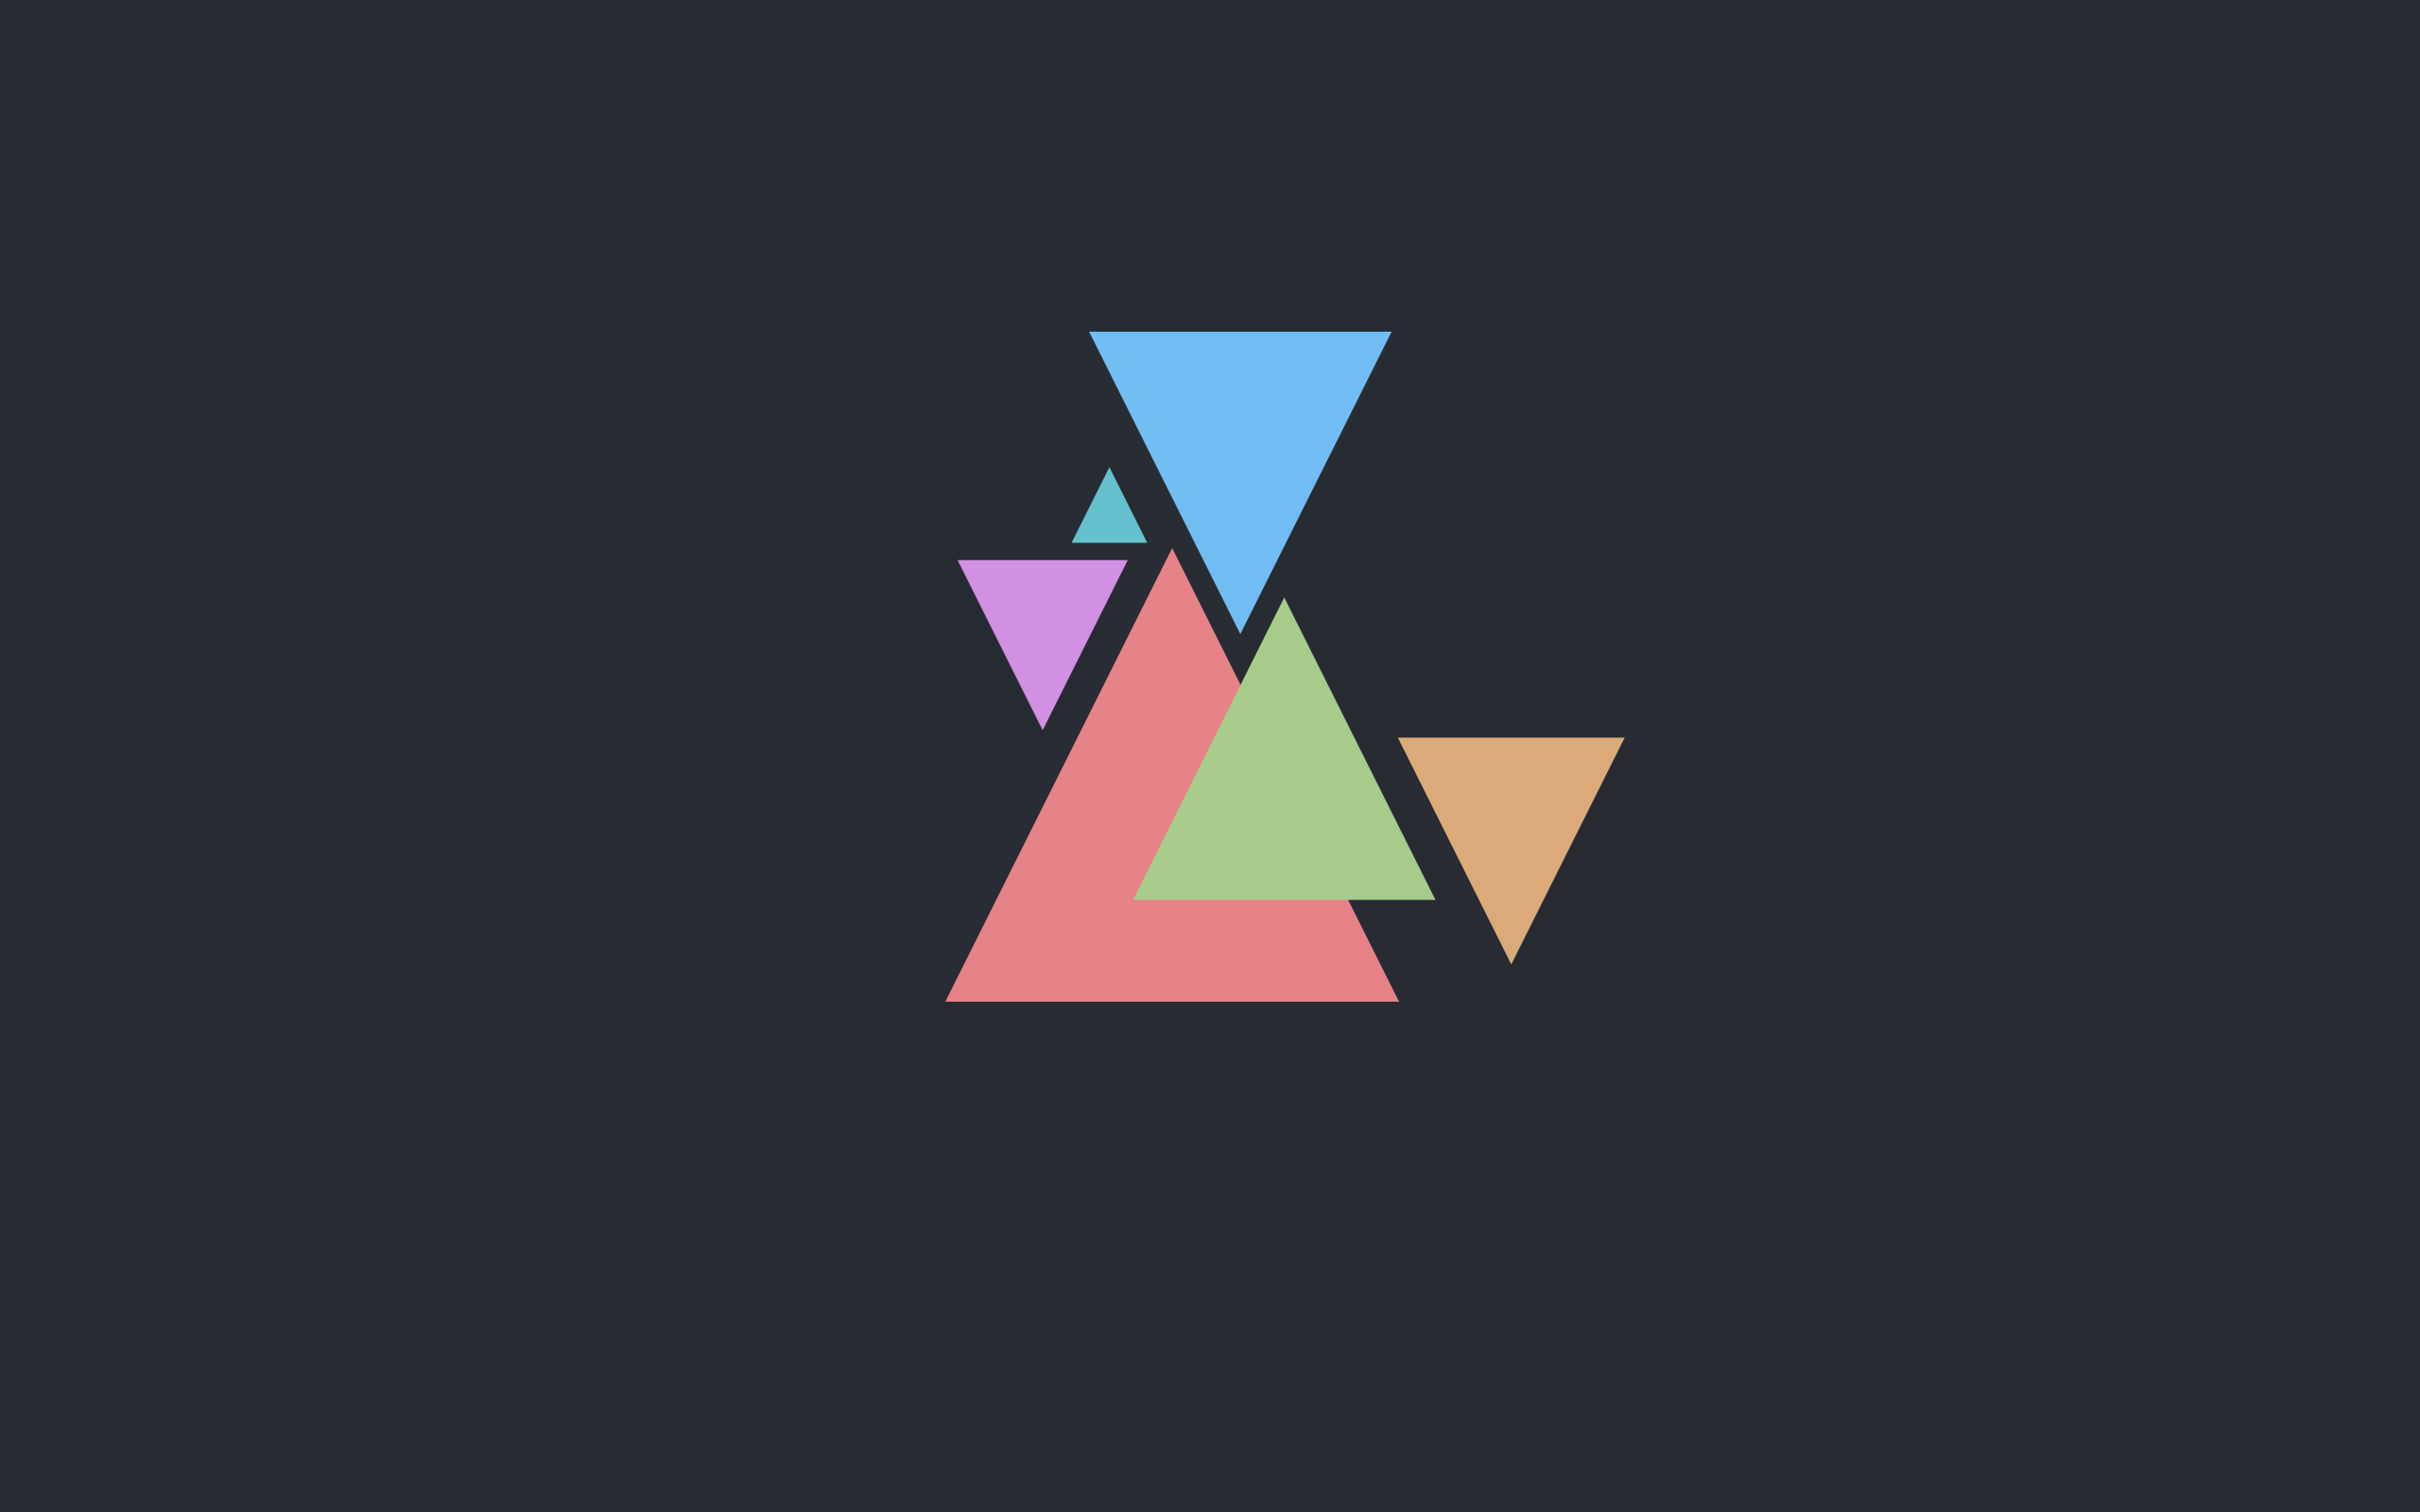 Atom 4k Wallpapers For Your Desktop Or Mobile Screen Free And Easy To Download